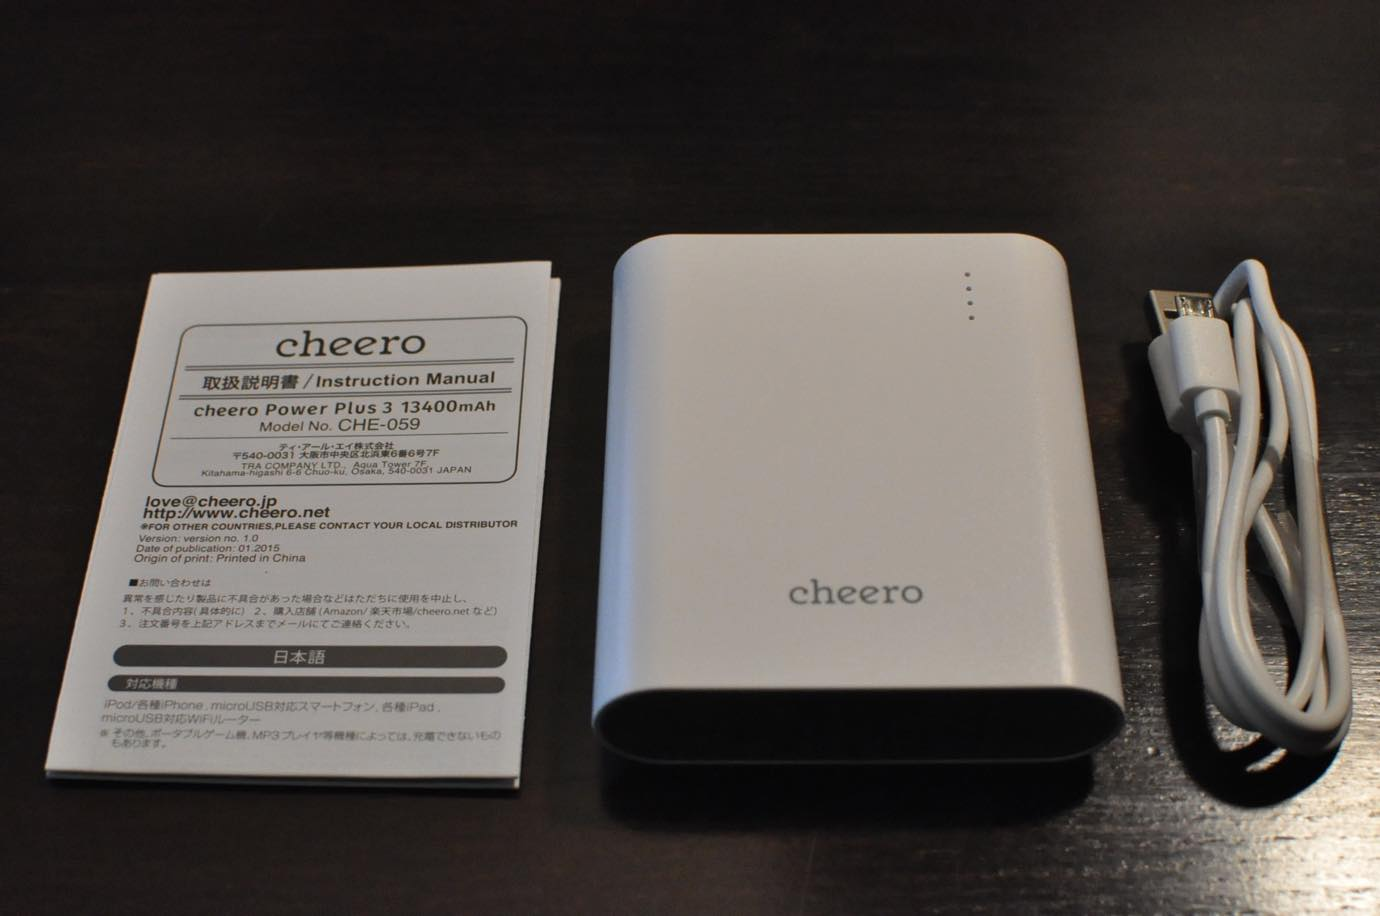 Cheero Power Plus 3 01 20150806 215454